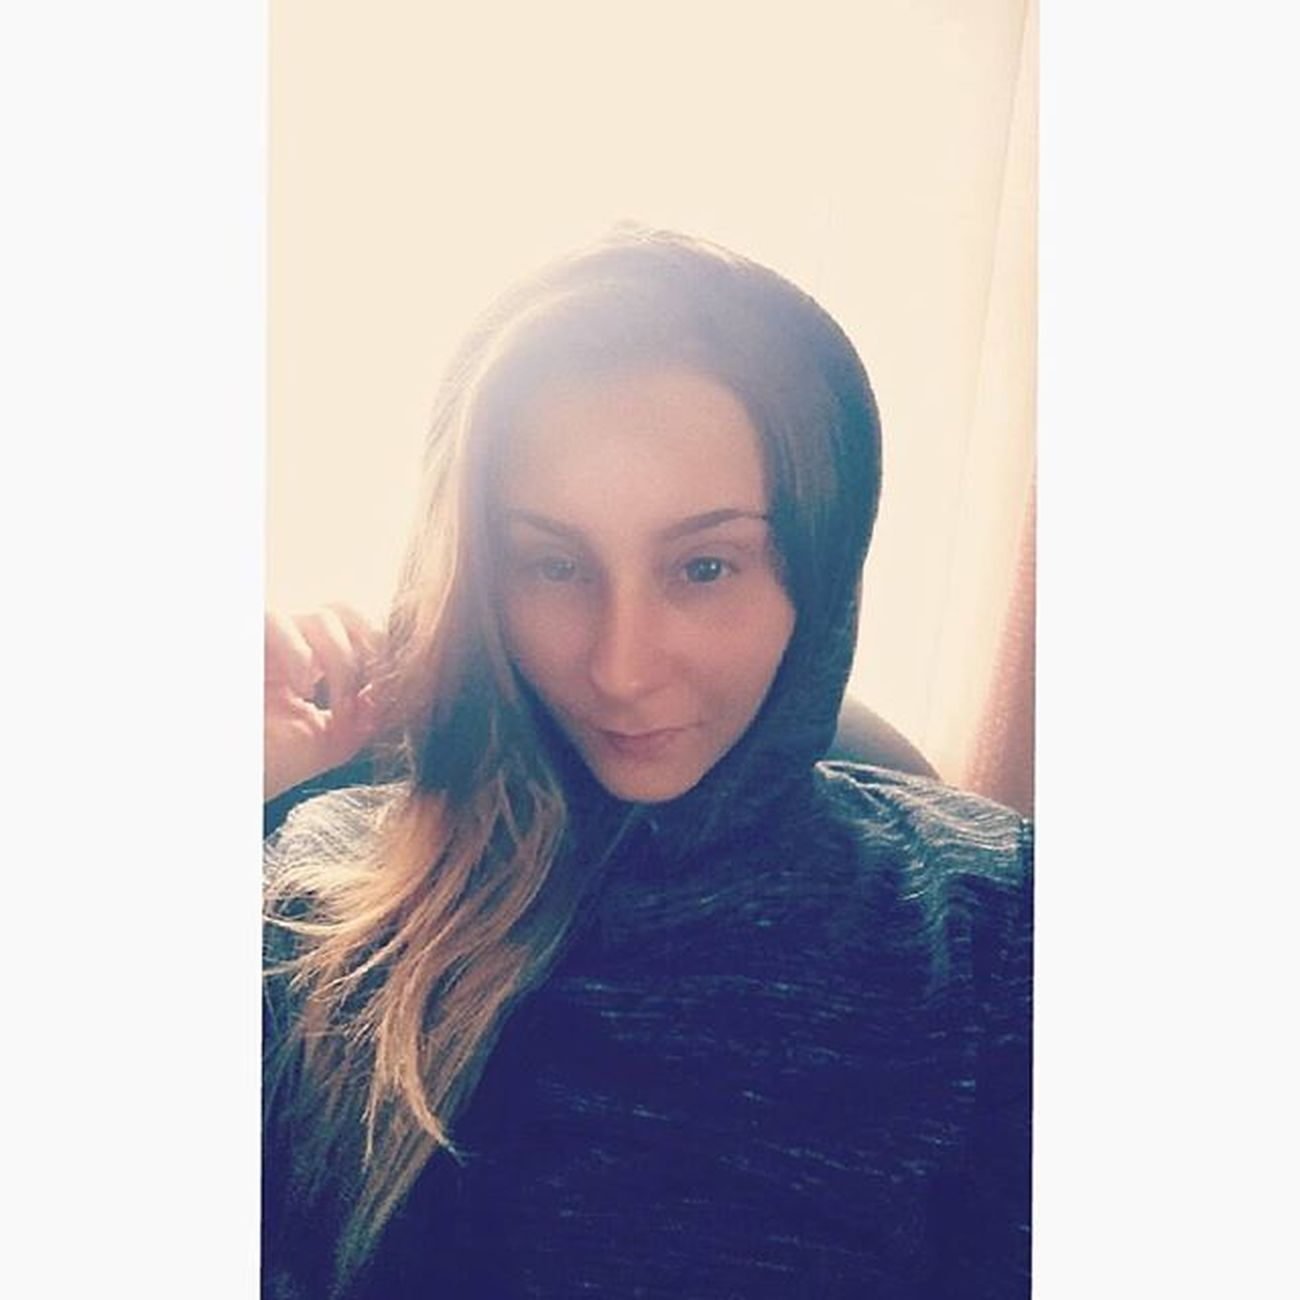 Hoodies for days ☺ Lovecoolerweather Hoodie Autumn Warm Snug Weather Smiles Nomakeup Messyhair Smiles Todayisgood Model Material Gopro Moments Me Selfie Photooftheday Instagood Photo Girlbikers Womanwhoride Bikelyf Bikelife Motorcycle bikes motorbikes yoshimura Australia rideordie bikeswithoutlimits